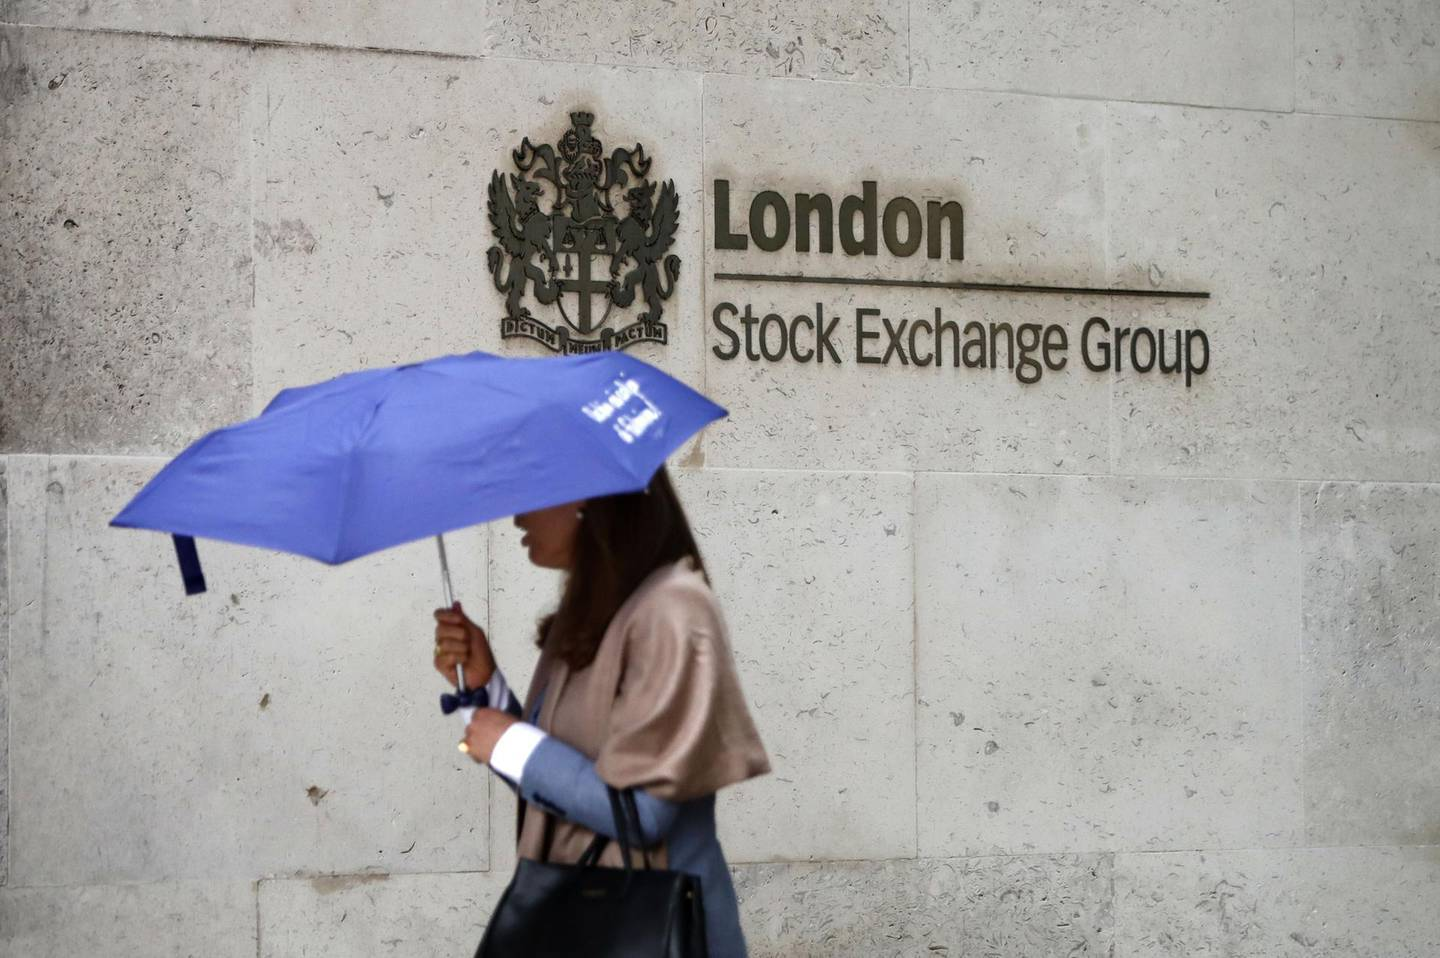 (FILES) This file photo taken on August 09, 2017 shows a commuter walking past the London Stock Exchange in the City of London on August 9, 2017.  London Stock Exchange Group shareholders are to vote on whether to hasten chairman Donald Brydon's exit following investor anger at the departure of chief executive Xavier Rolet, the LSEG announced December 1, 2017. / AFP PHOTO / Tolga AKMEN